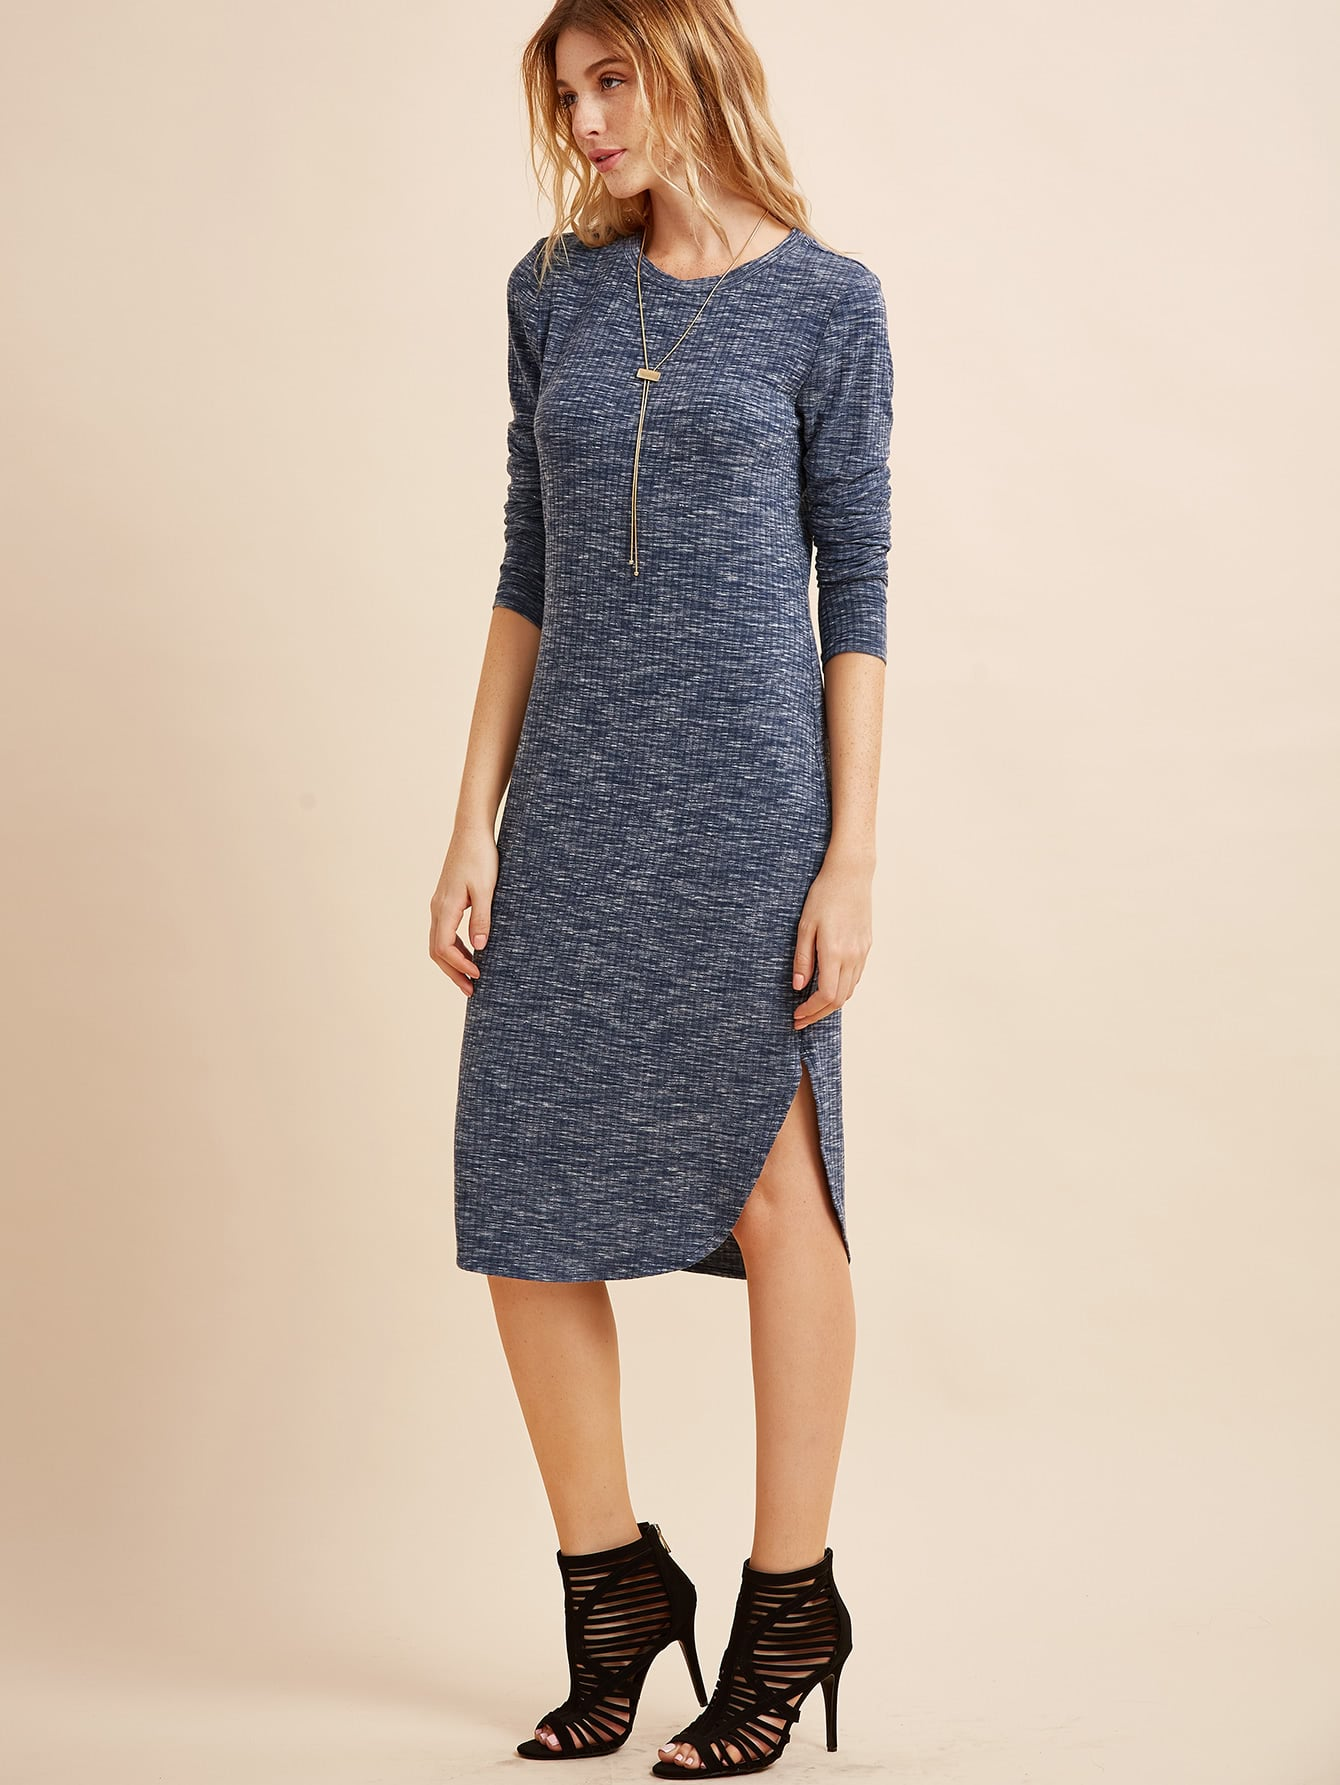 Navy Marled Knit Curved Hem Ribbed Dress dress160927706